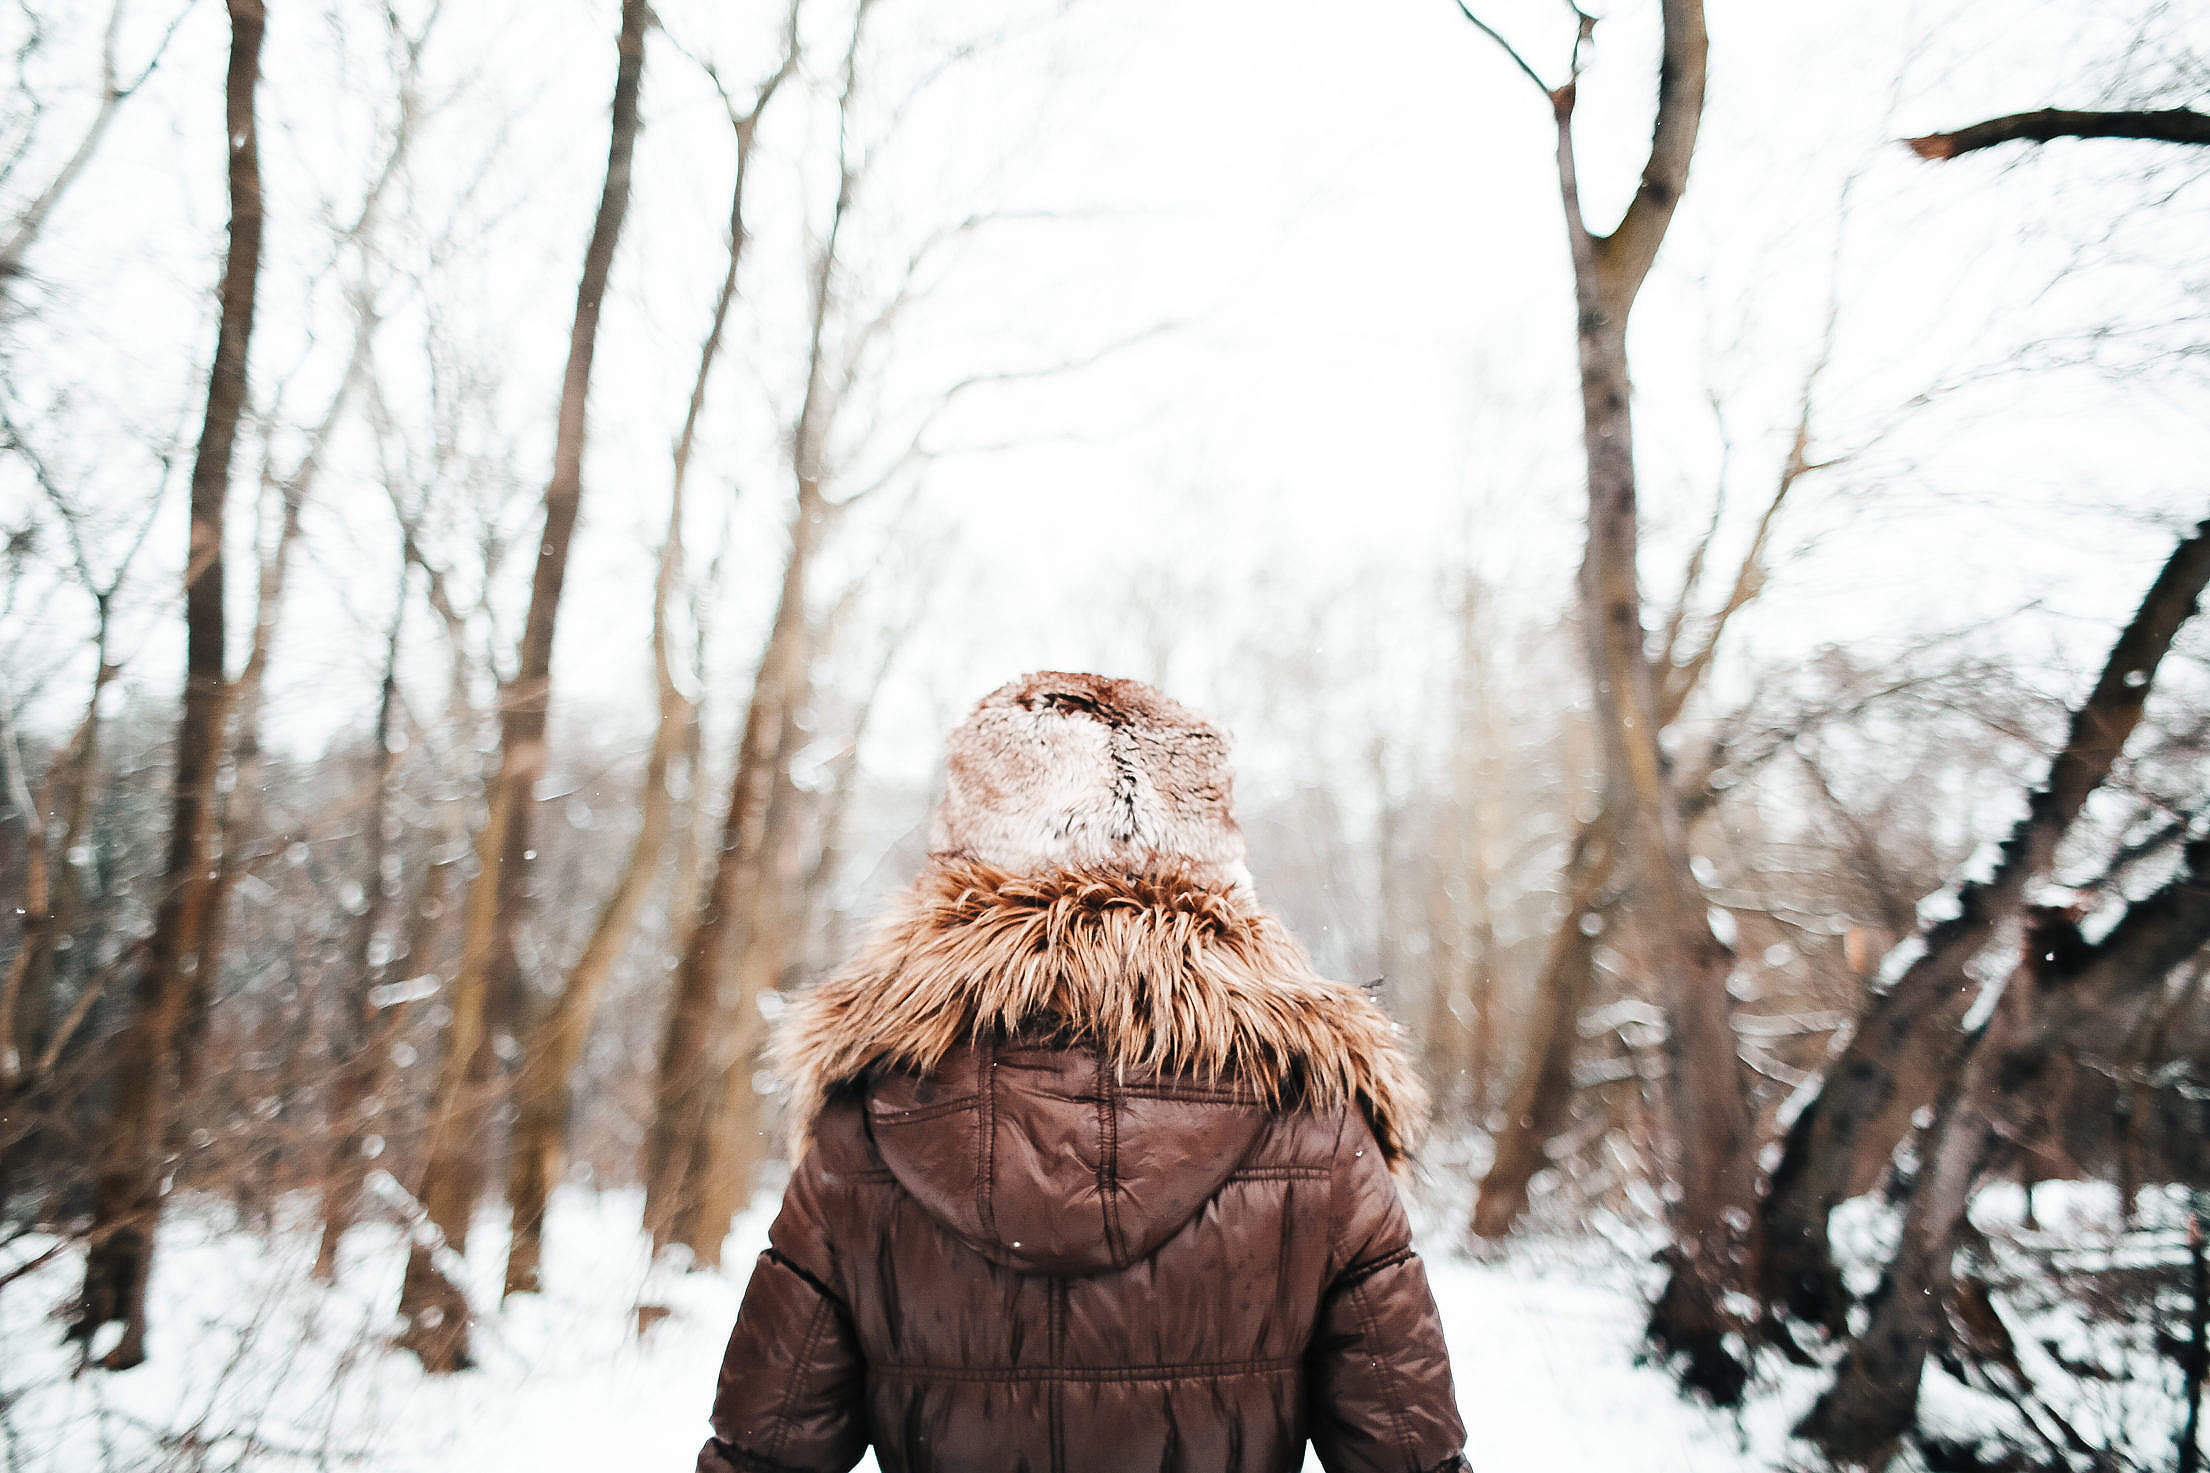 Girl Walking in Snowy Forest